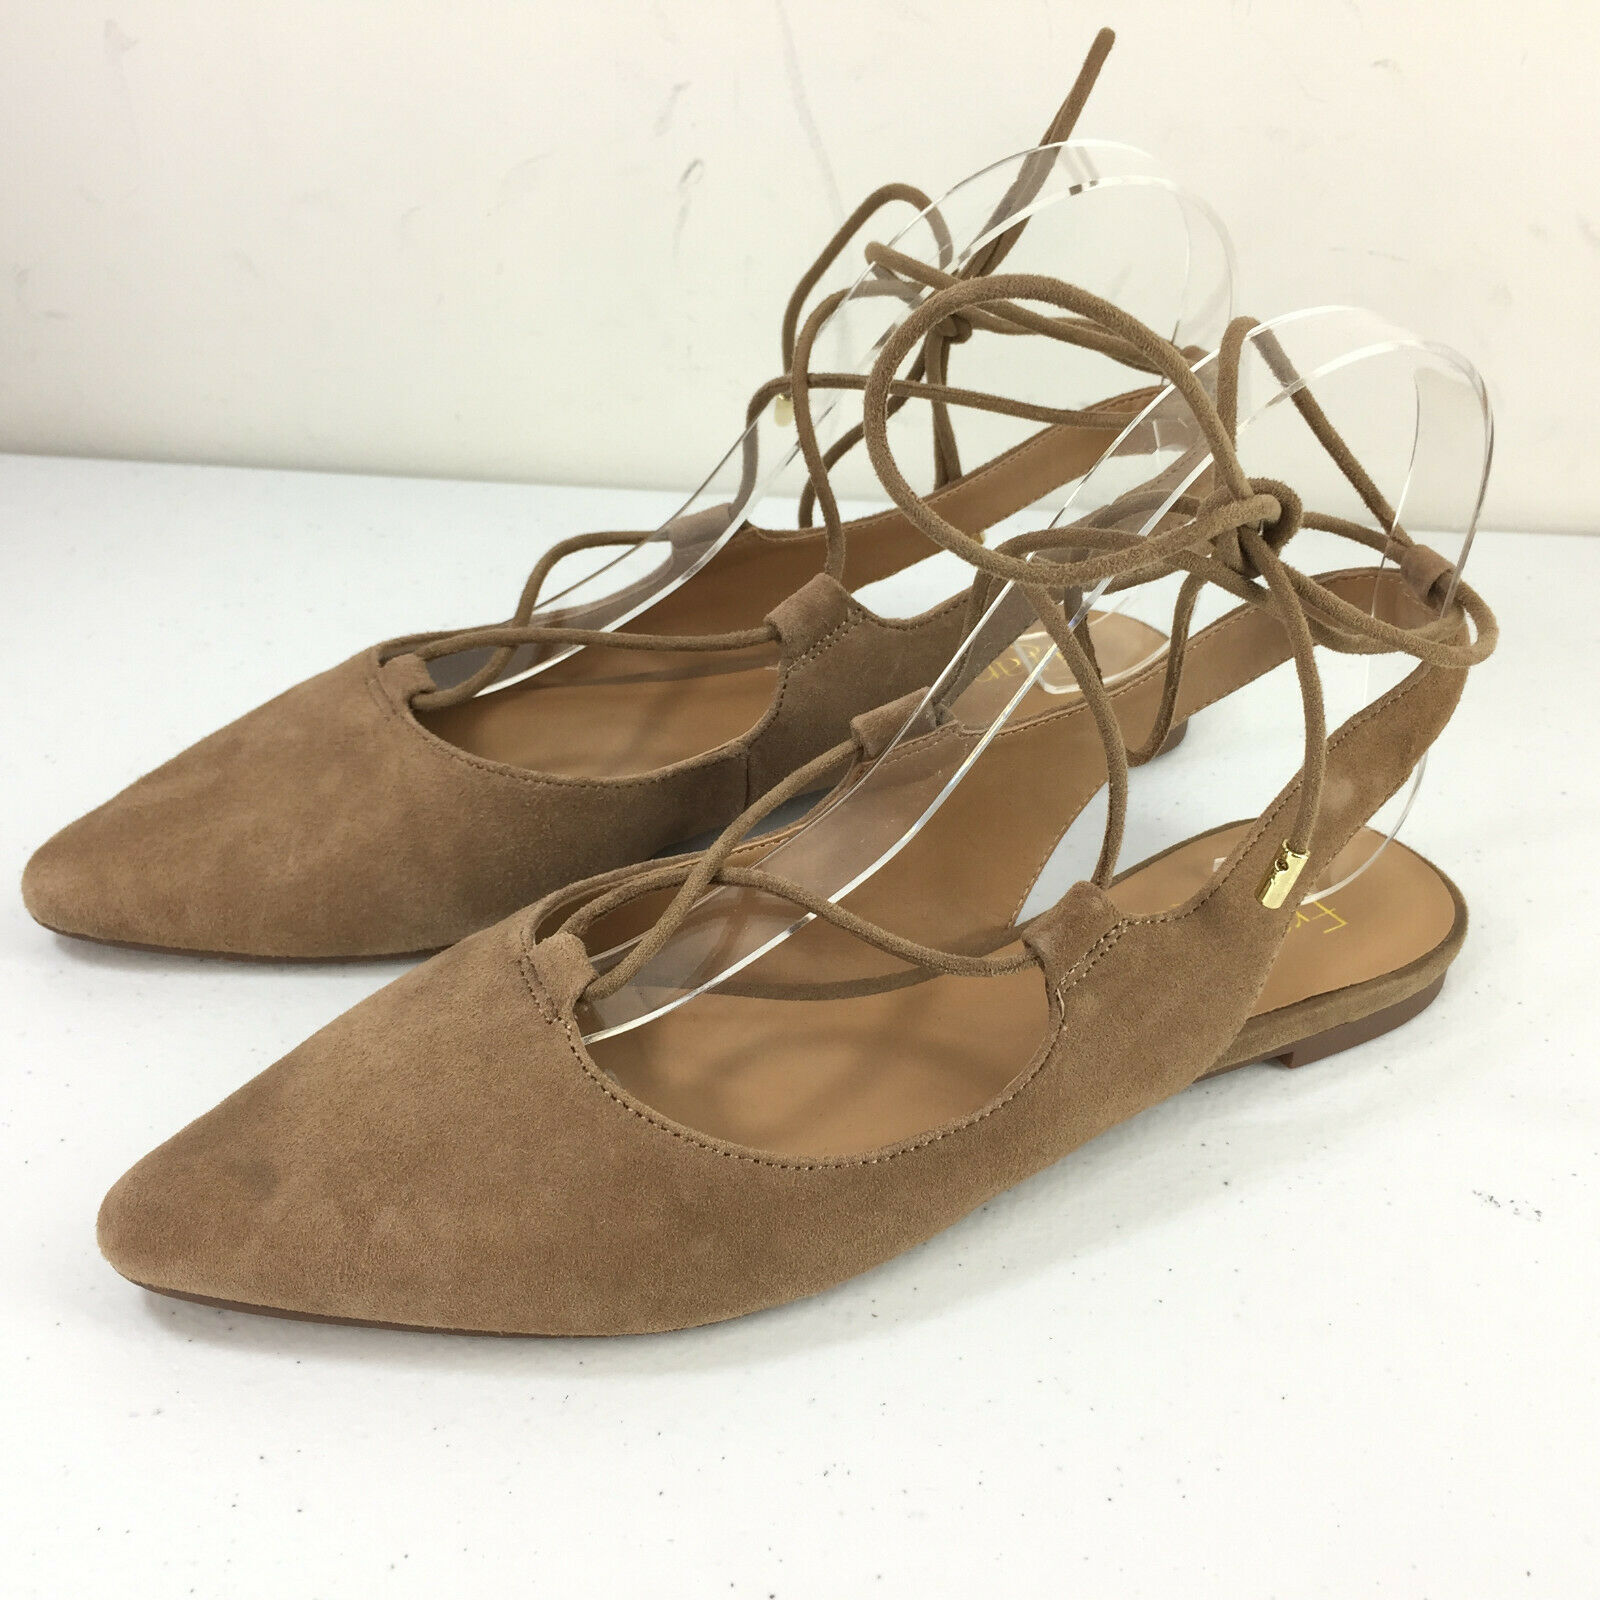 Franco Sarto 7.5 Brown Suede Ballet Flats Lace UP Ankle EUC Simone Career casual